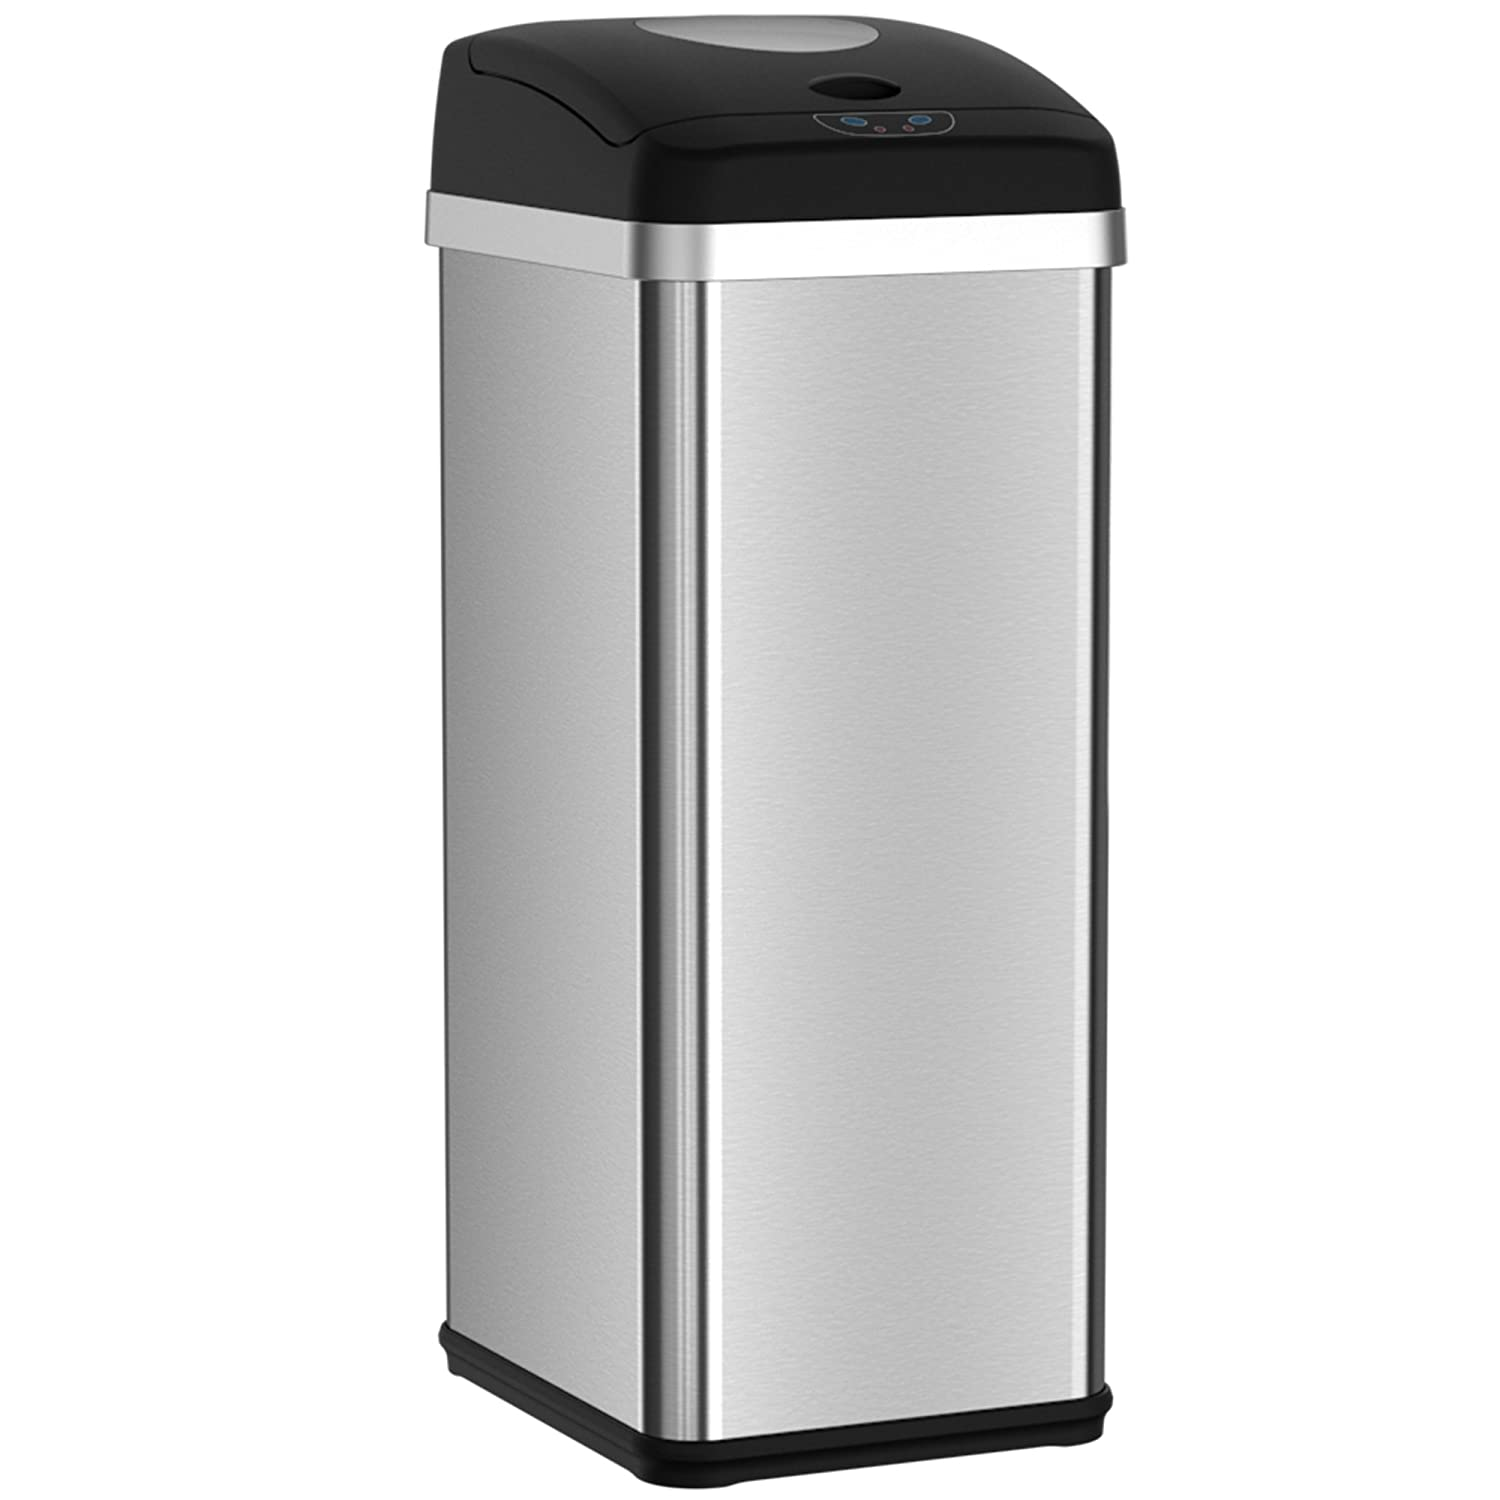 halo 13 Gallon Touchless Trash Compactor Automatic Trash Can